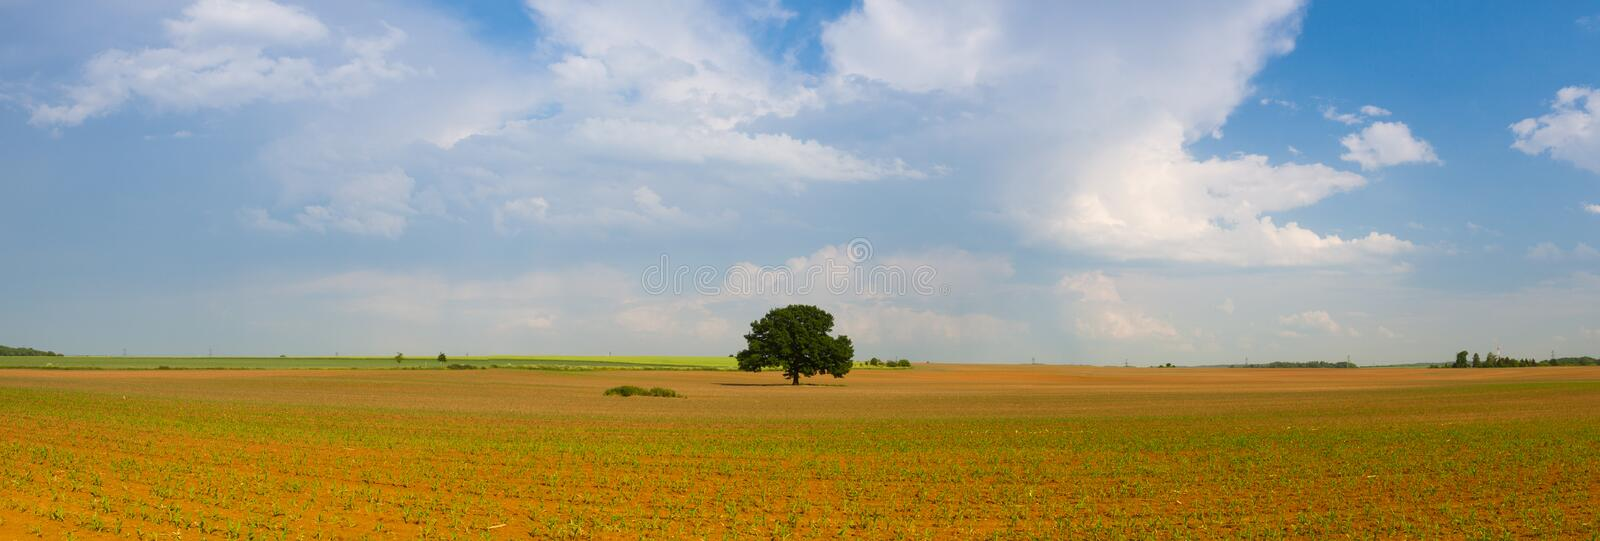 Memorable tree on the empty corn field. royalty free stock images